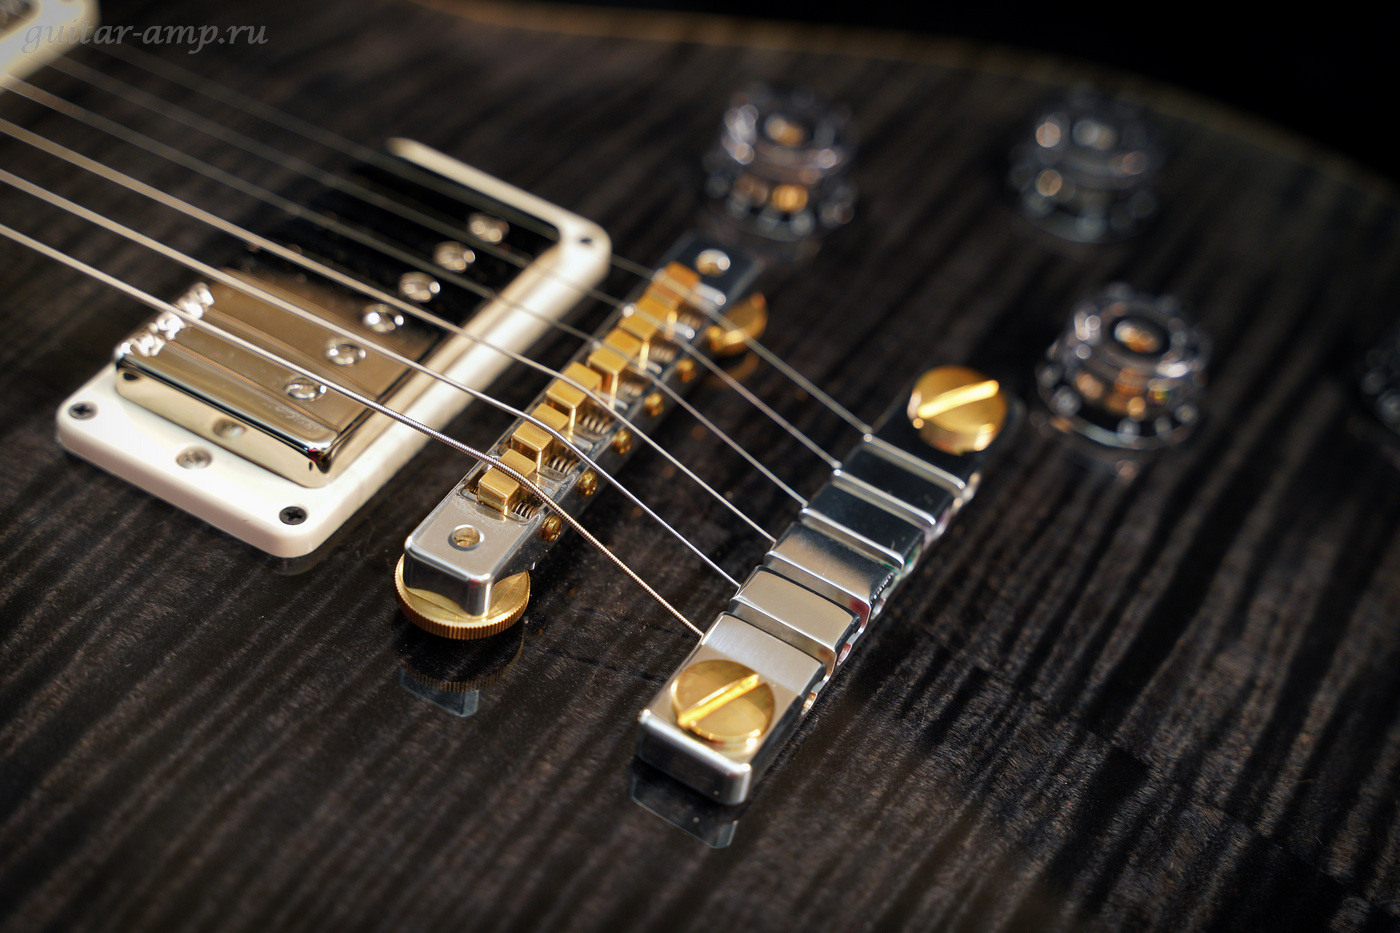 PRS SC245 Charcoal Grey Black 10 Top 2015 09_garx1400.jpg